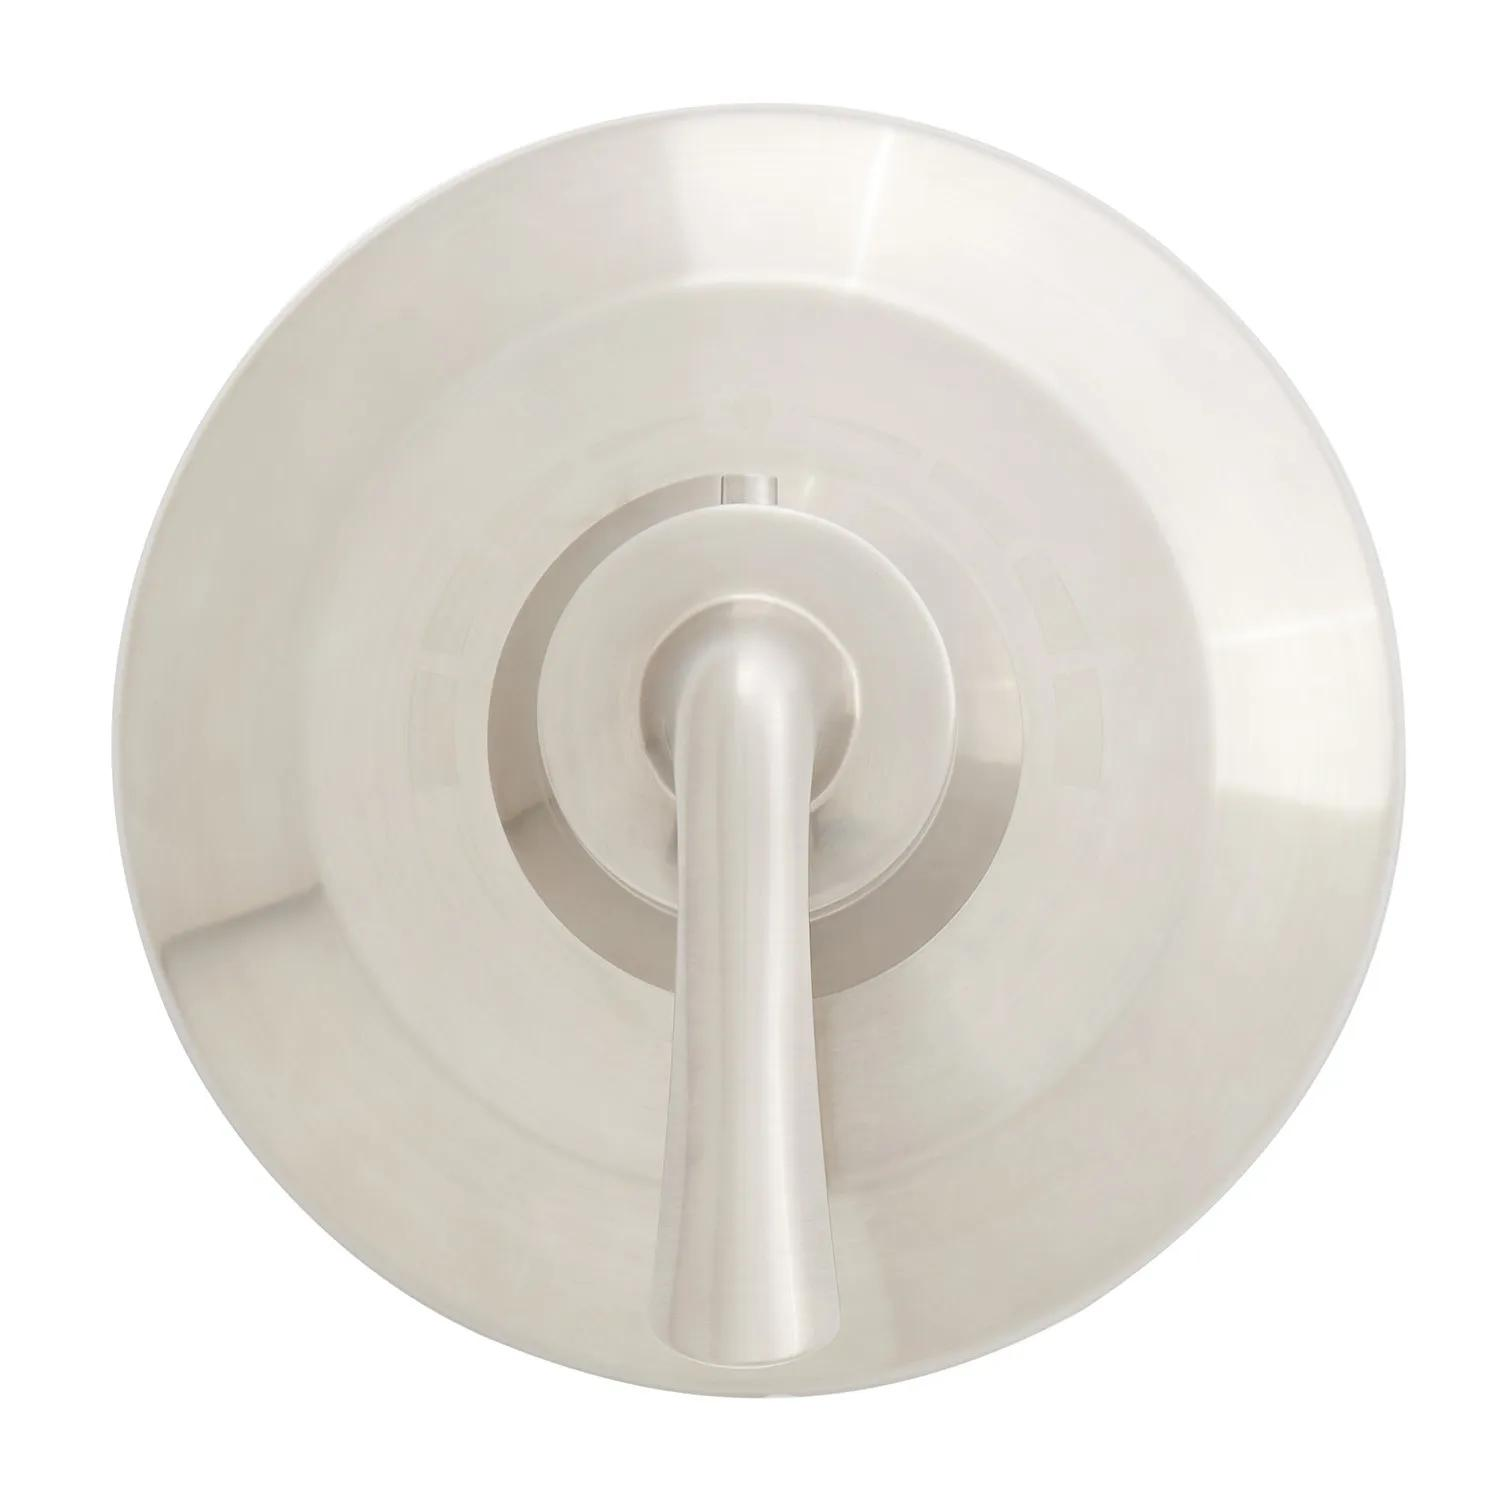 Provincetown Thermostatic Shower Valve With Volume Control Handle Bathroom